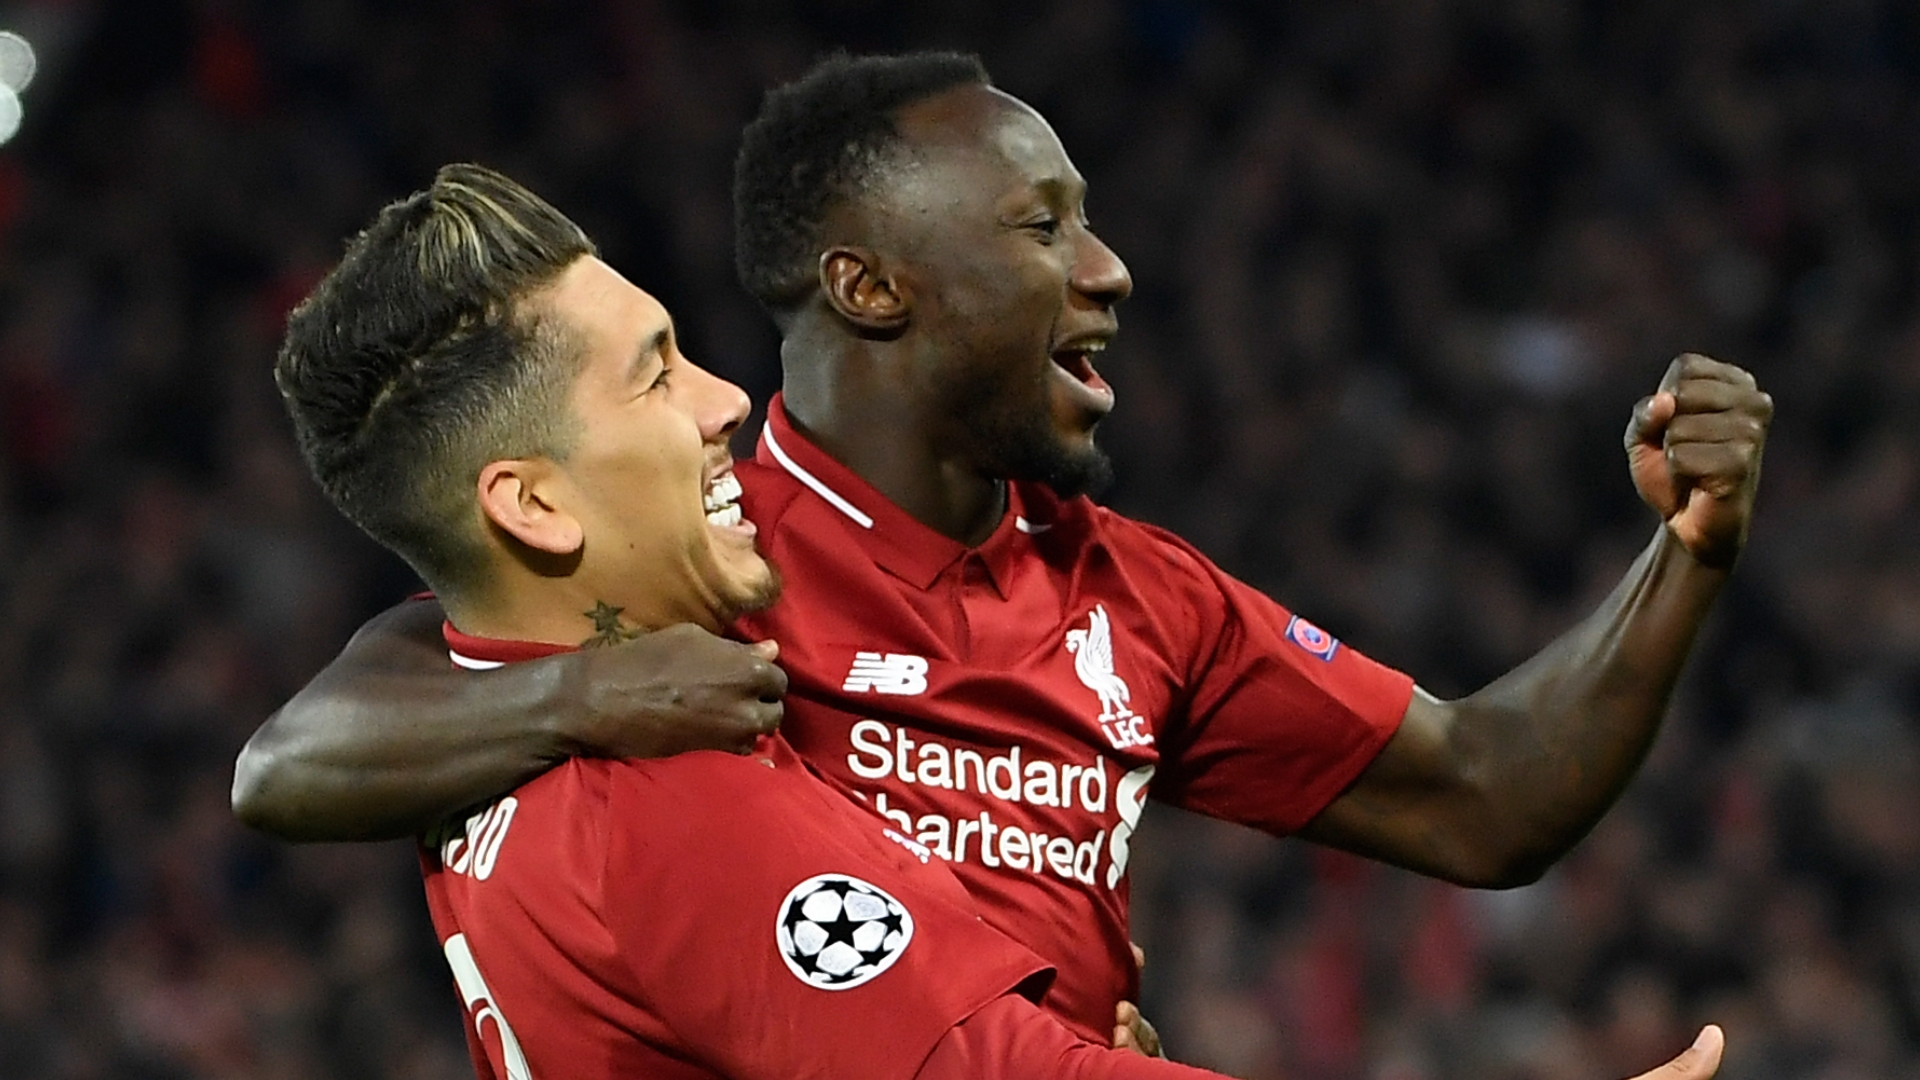 Klopp I Have No Idea How Many Goals Firmino Has Scored: Liverpool News: 'Naby Keita Has Disappointed At £53m